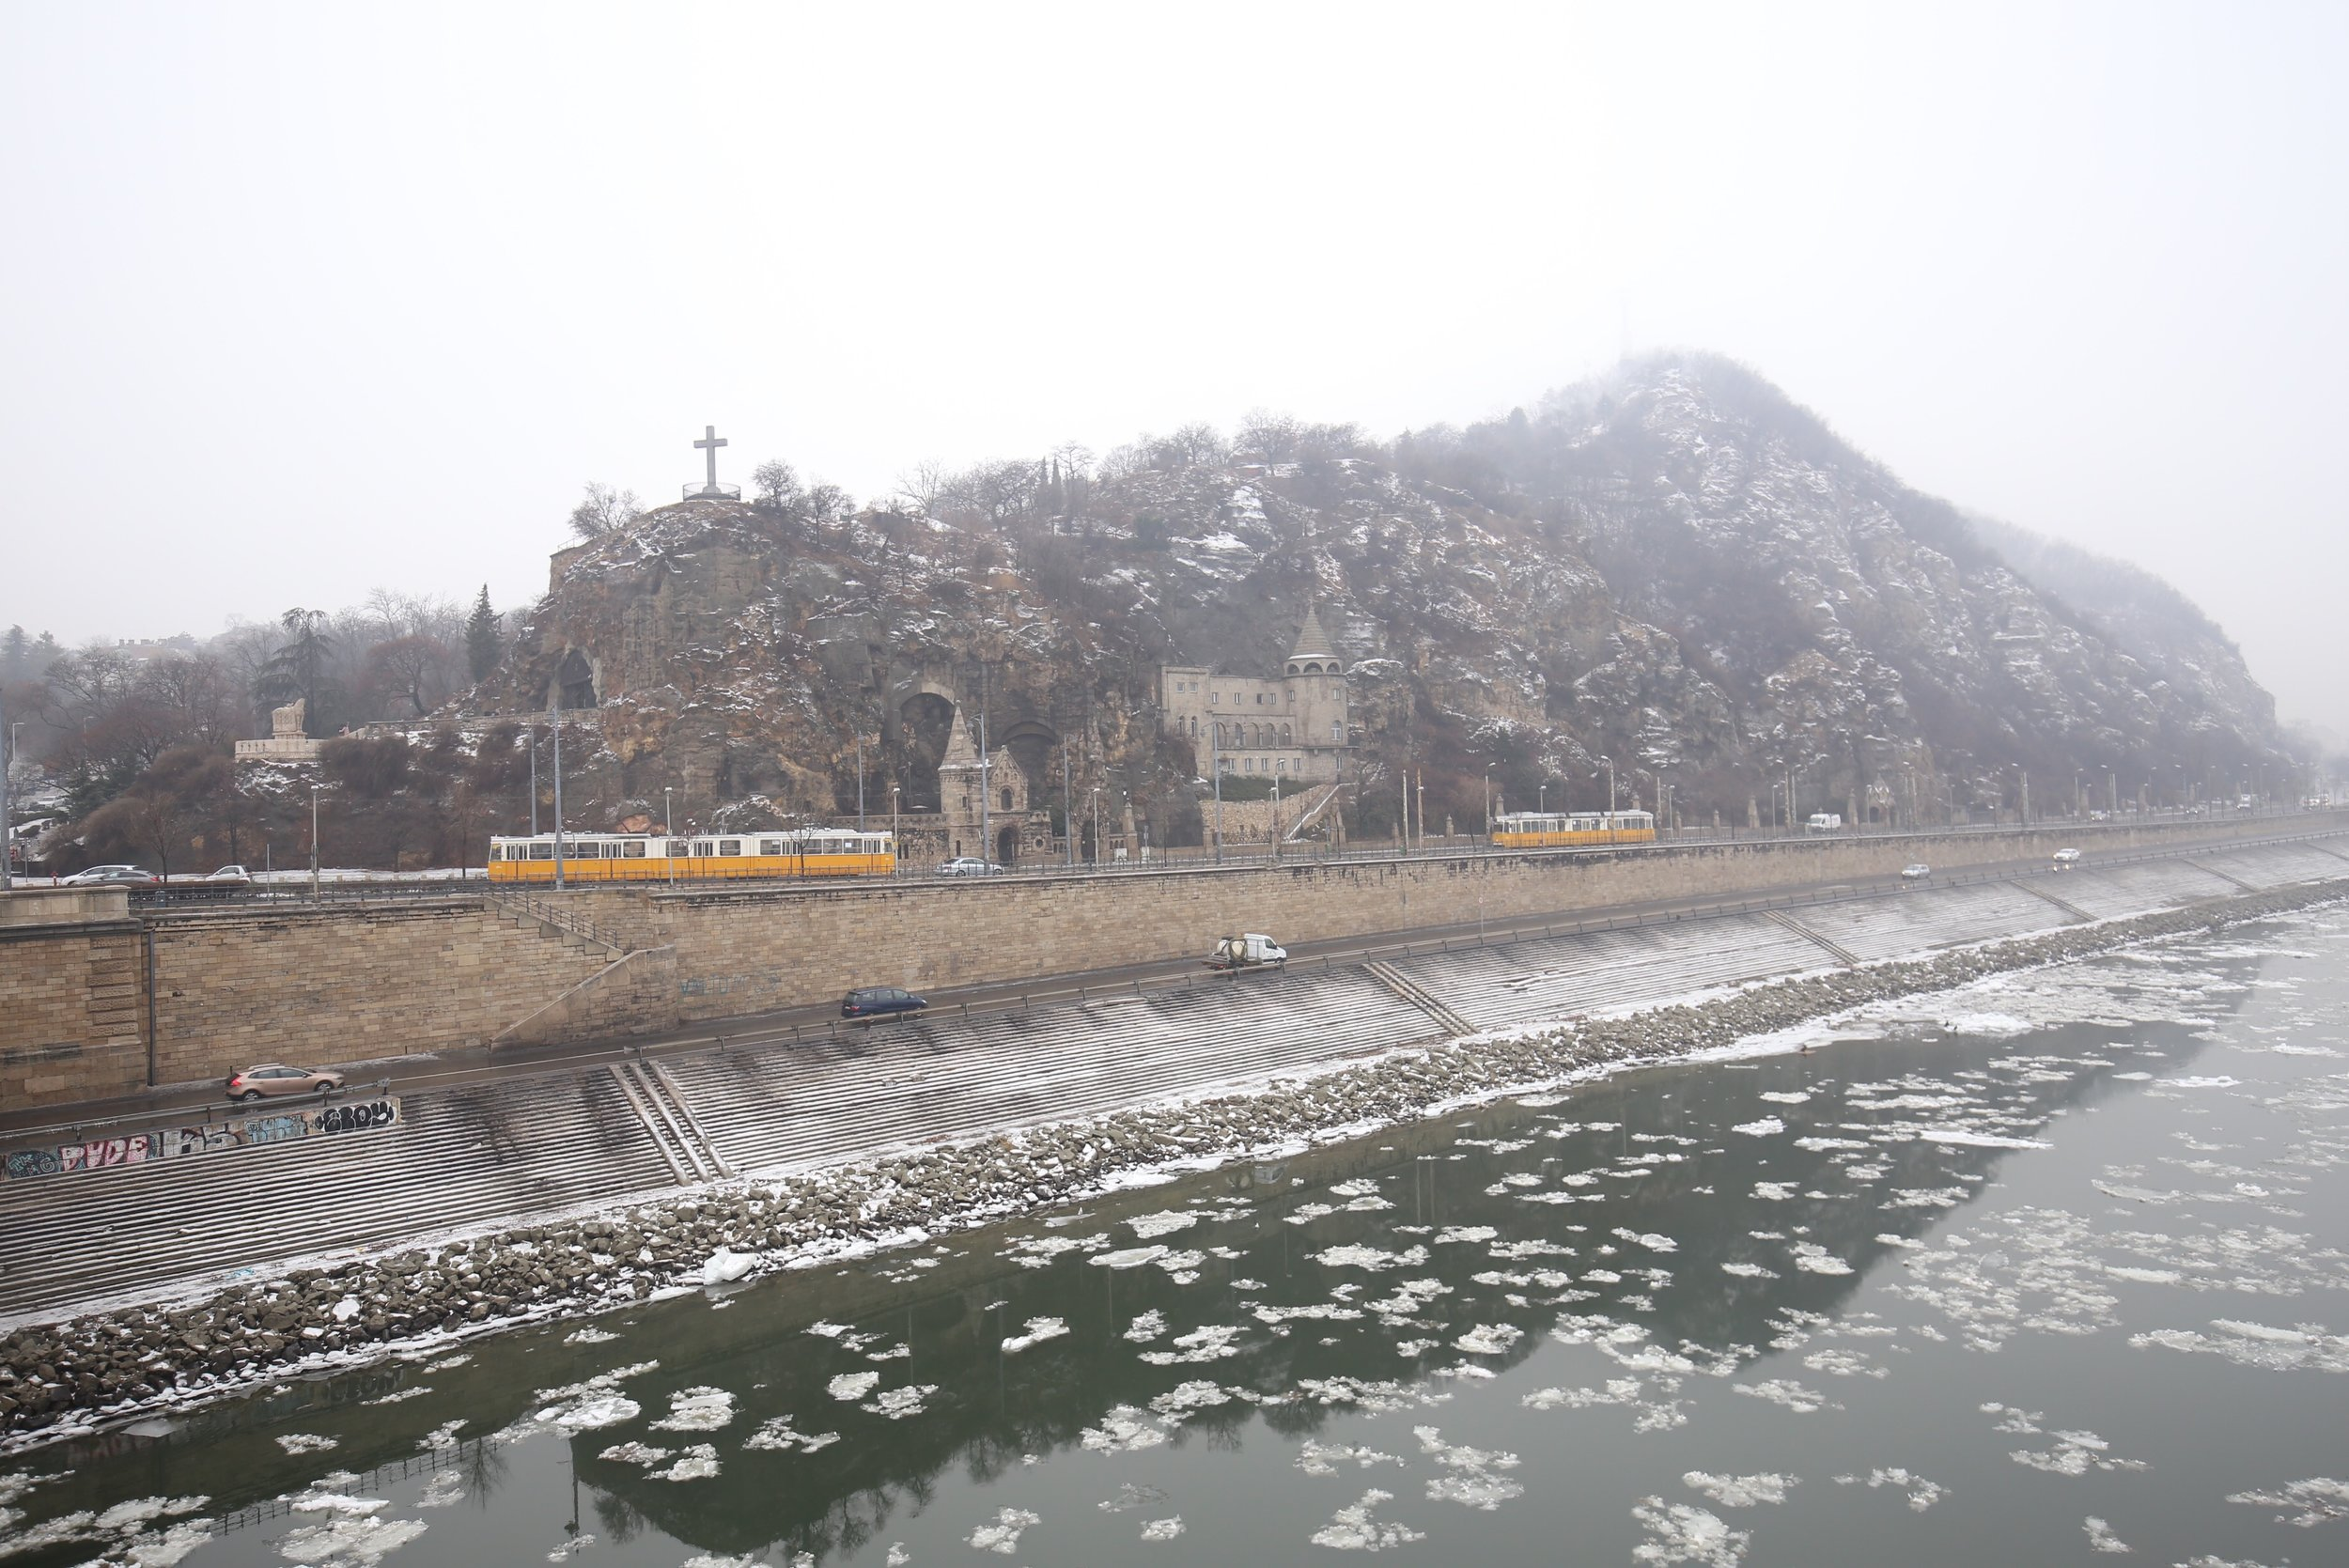 The yellow trolleys of Budapest rattle by the icy Danube river in winter.